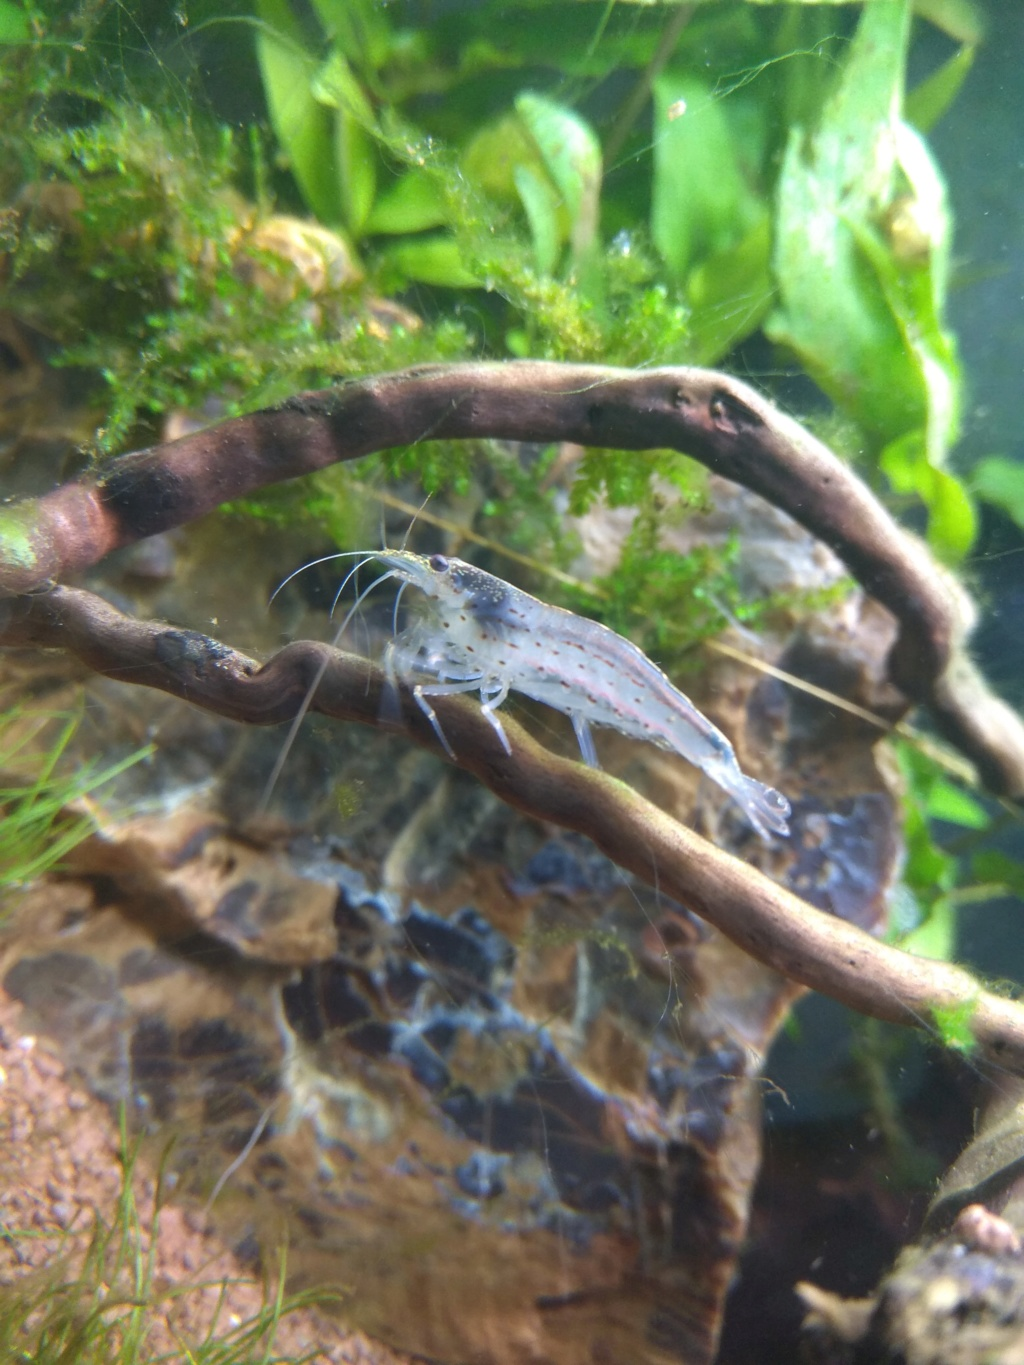 60l biotope asiatique - Page 3 Img_2017